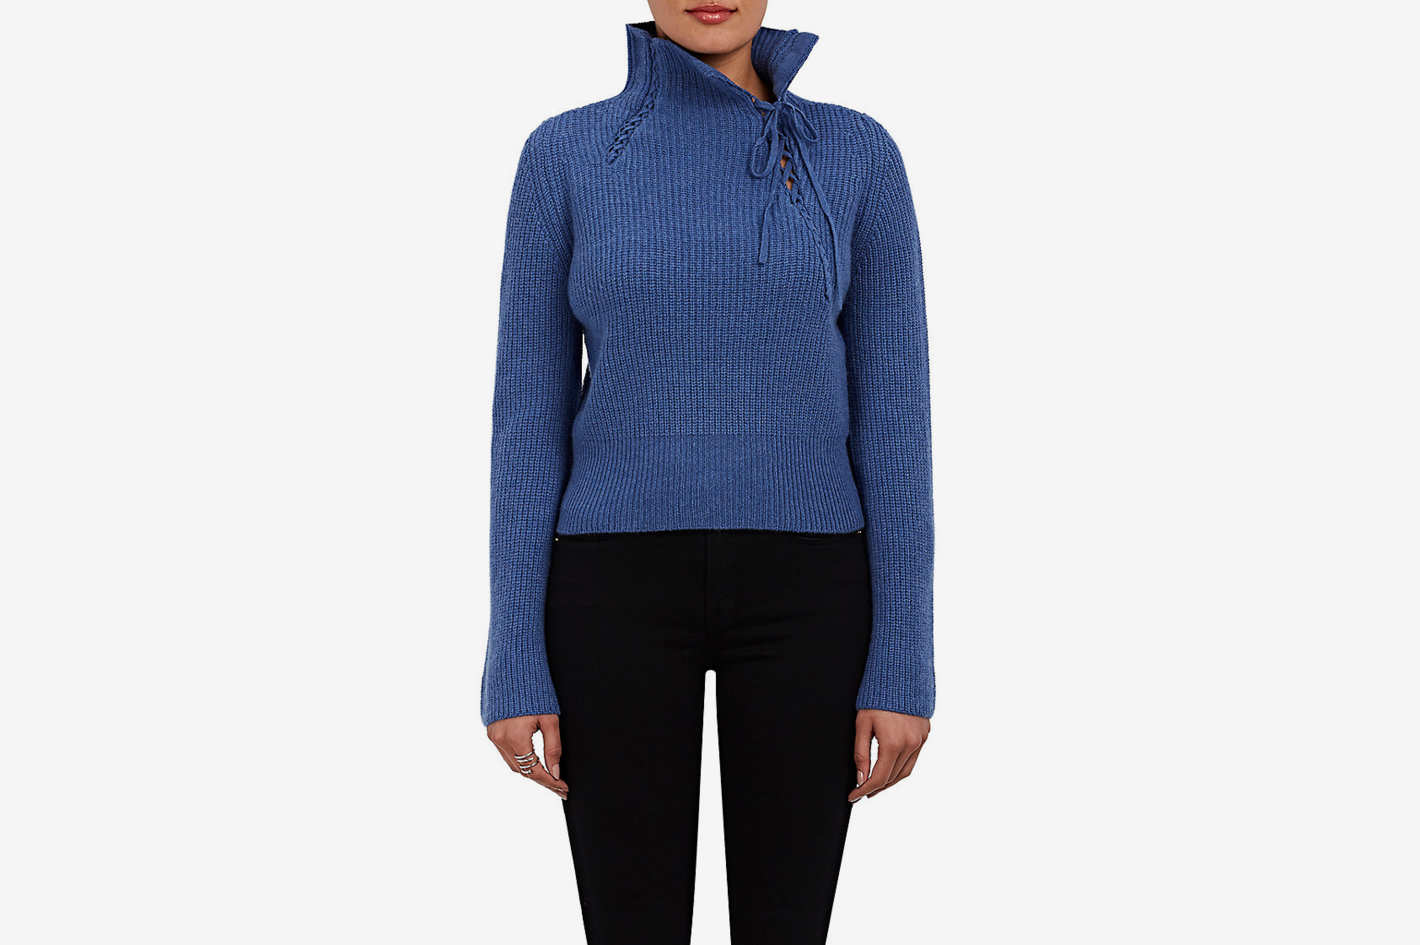 Derek Lam 10 Crosby Wool-Blend Mock Turtleneck Sweater